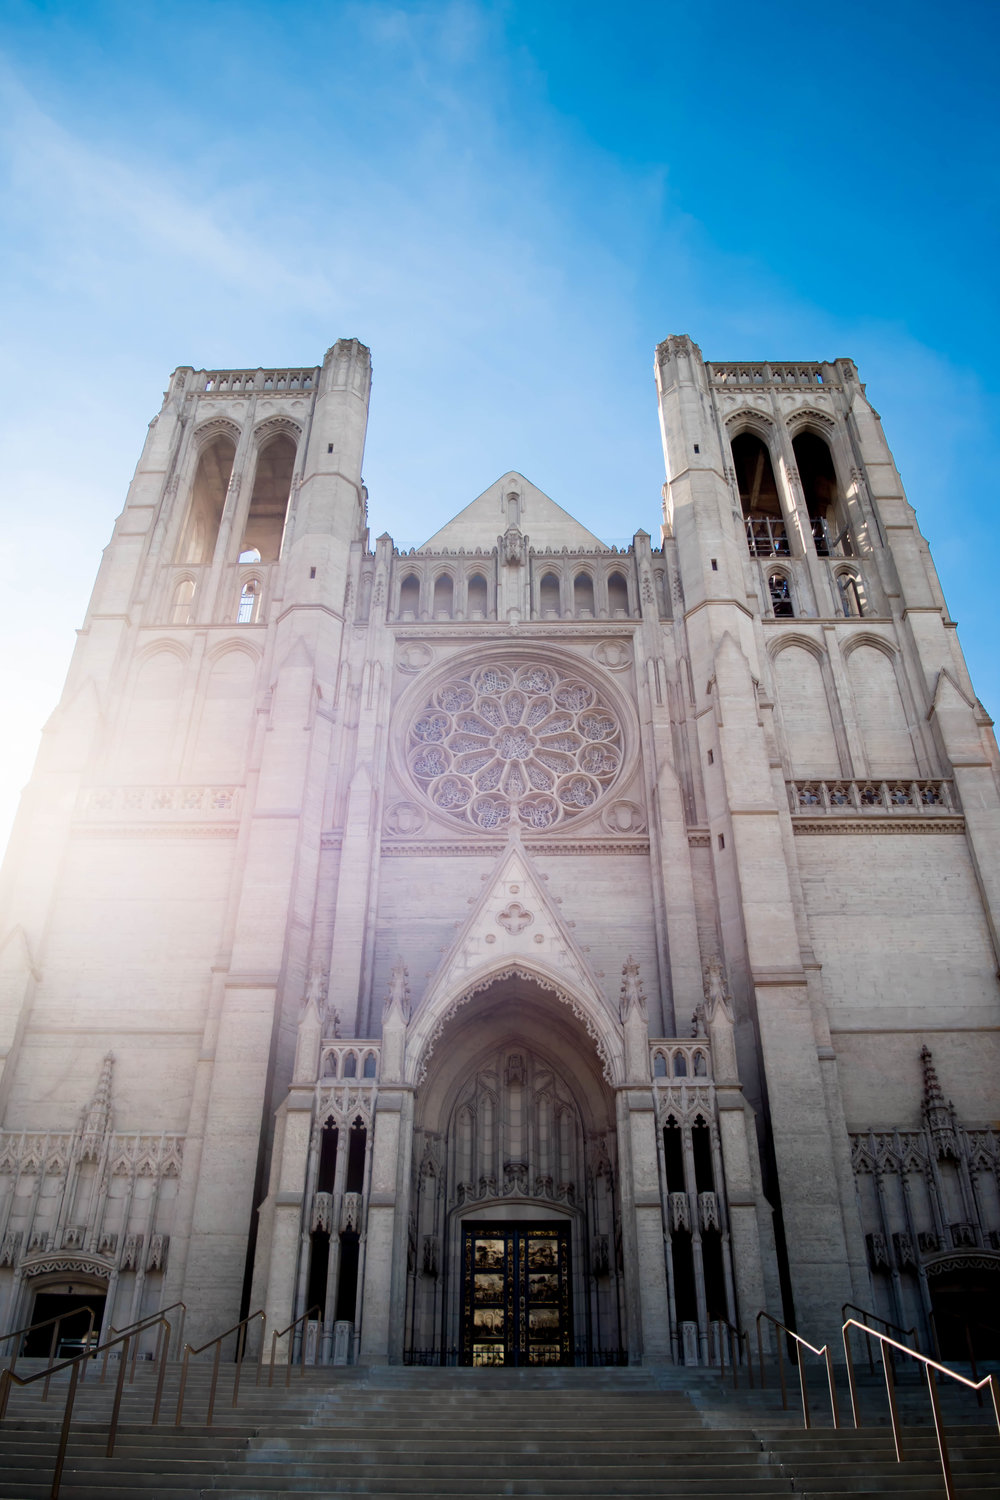 Grace Cathedral - 1100 California St, San Francisco, CA 94108